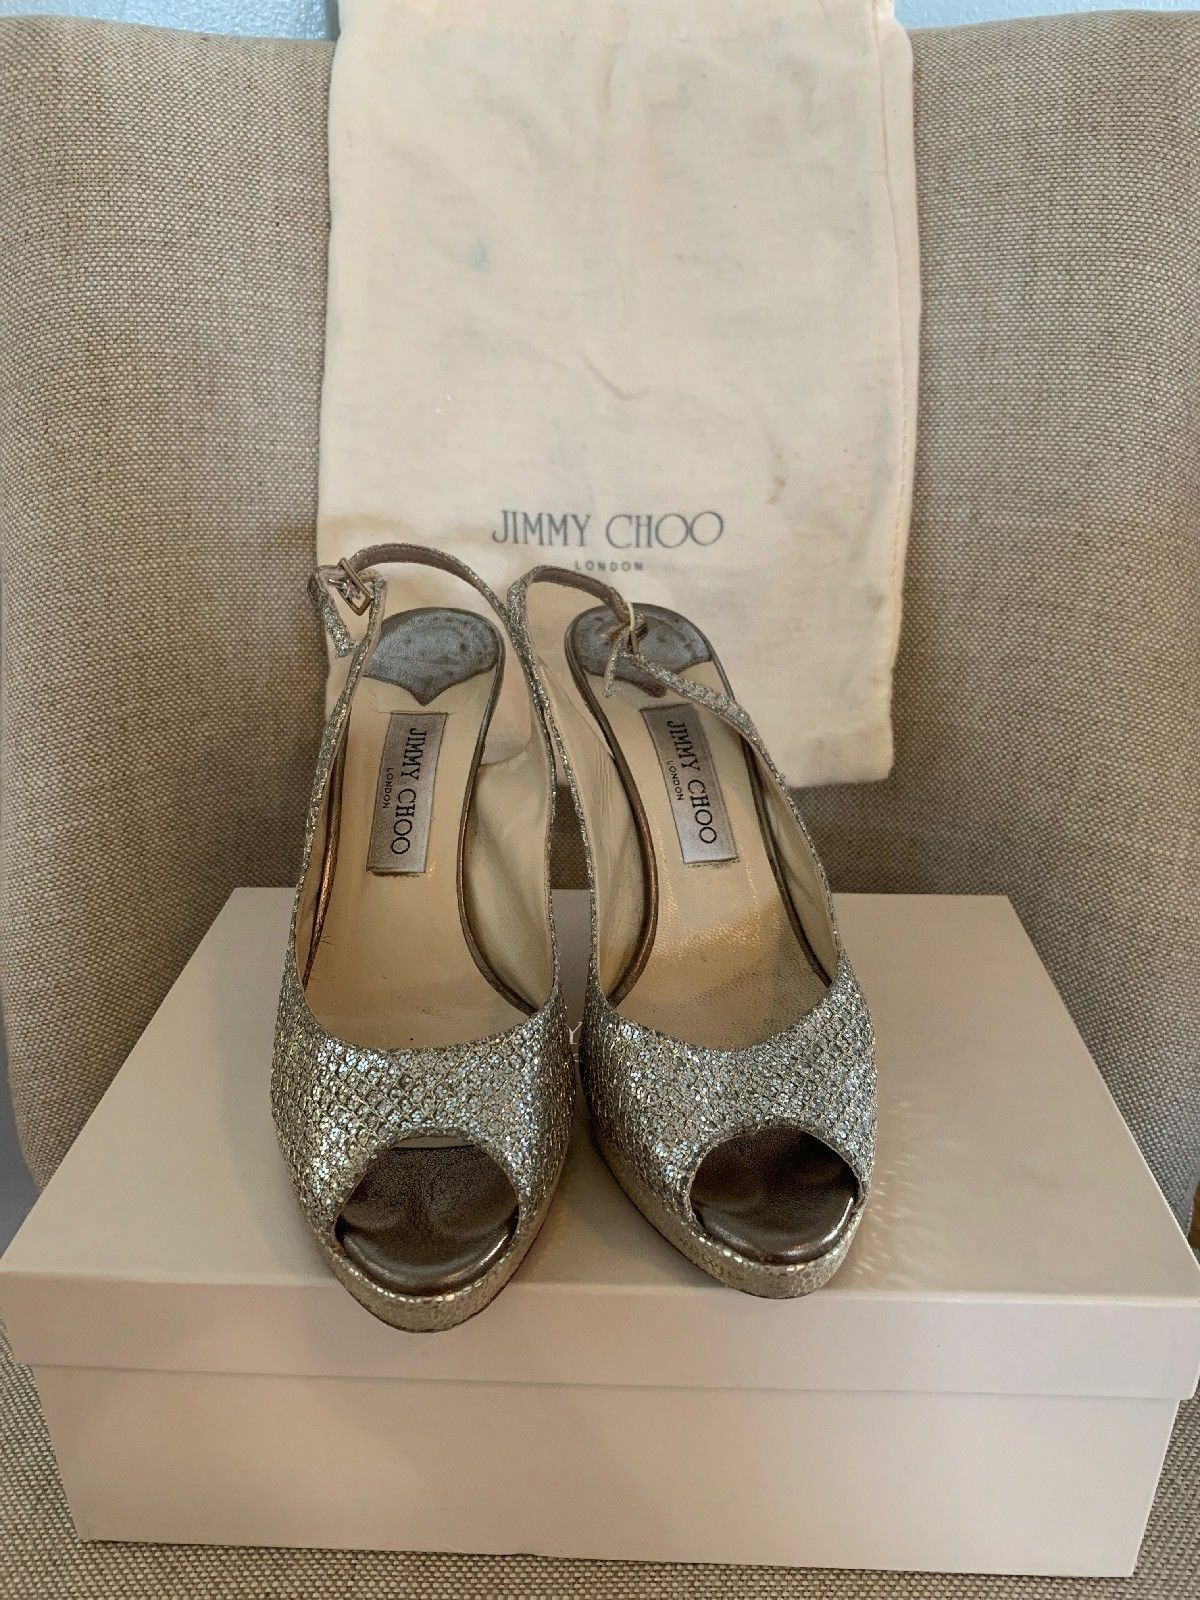 Jimmy Choo Nova Glitter Peep Toe Pumps sz 39